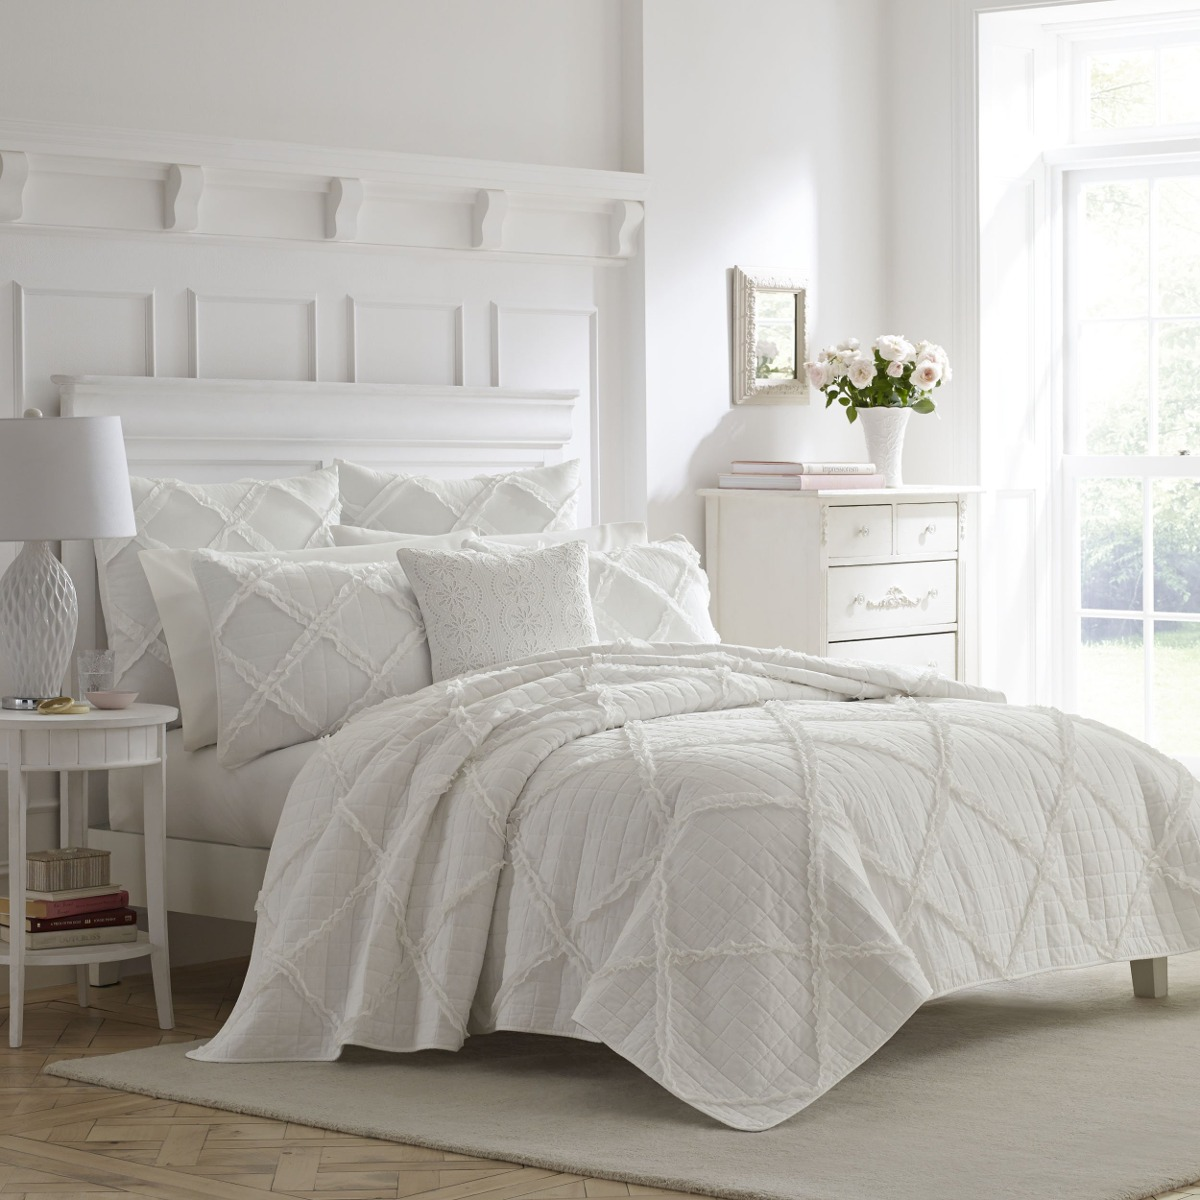 Laura Ashley Muebles Laura Ashley Maisy Ropa De Cama Color Blanco Cottage Blan